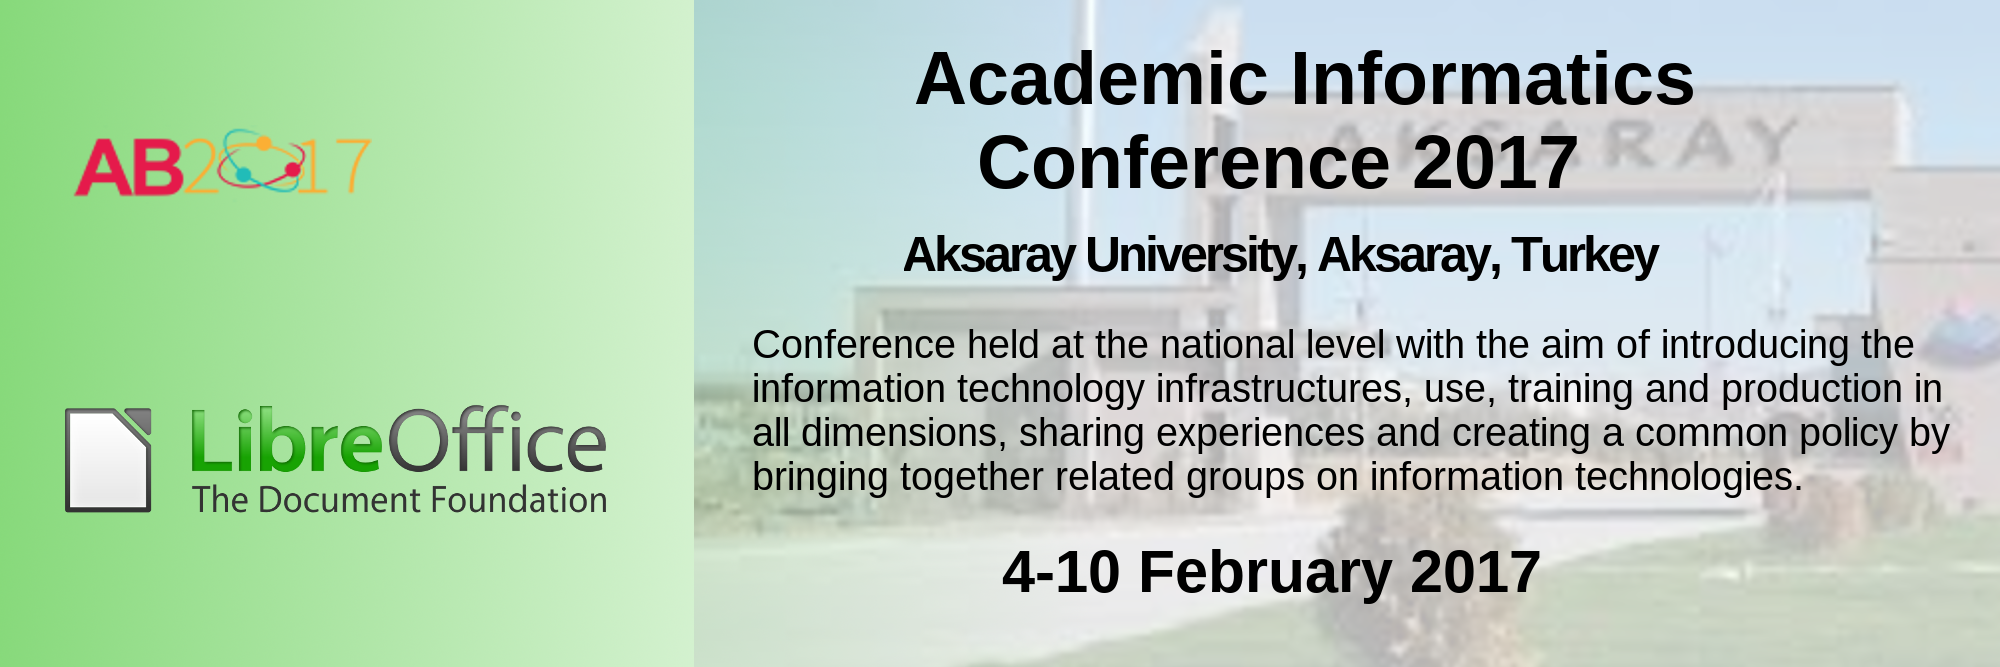 02 04 10Feb2017 AcademicInformatics Conference2017 EN